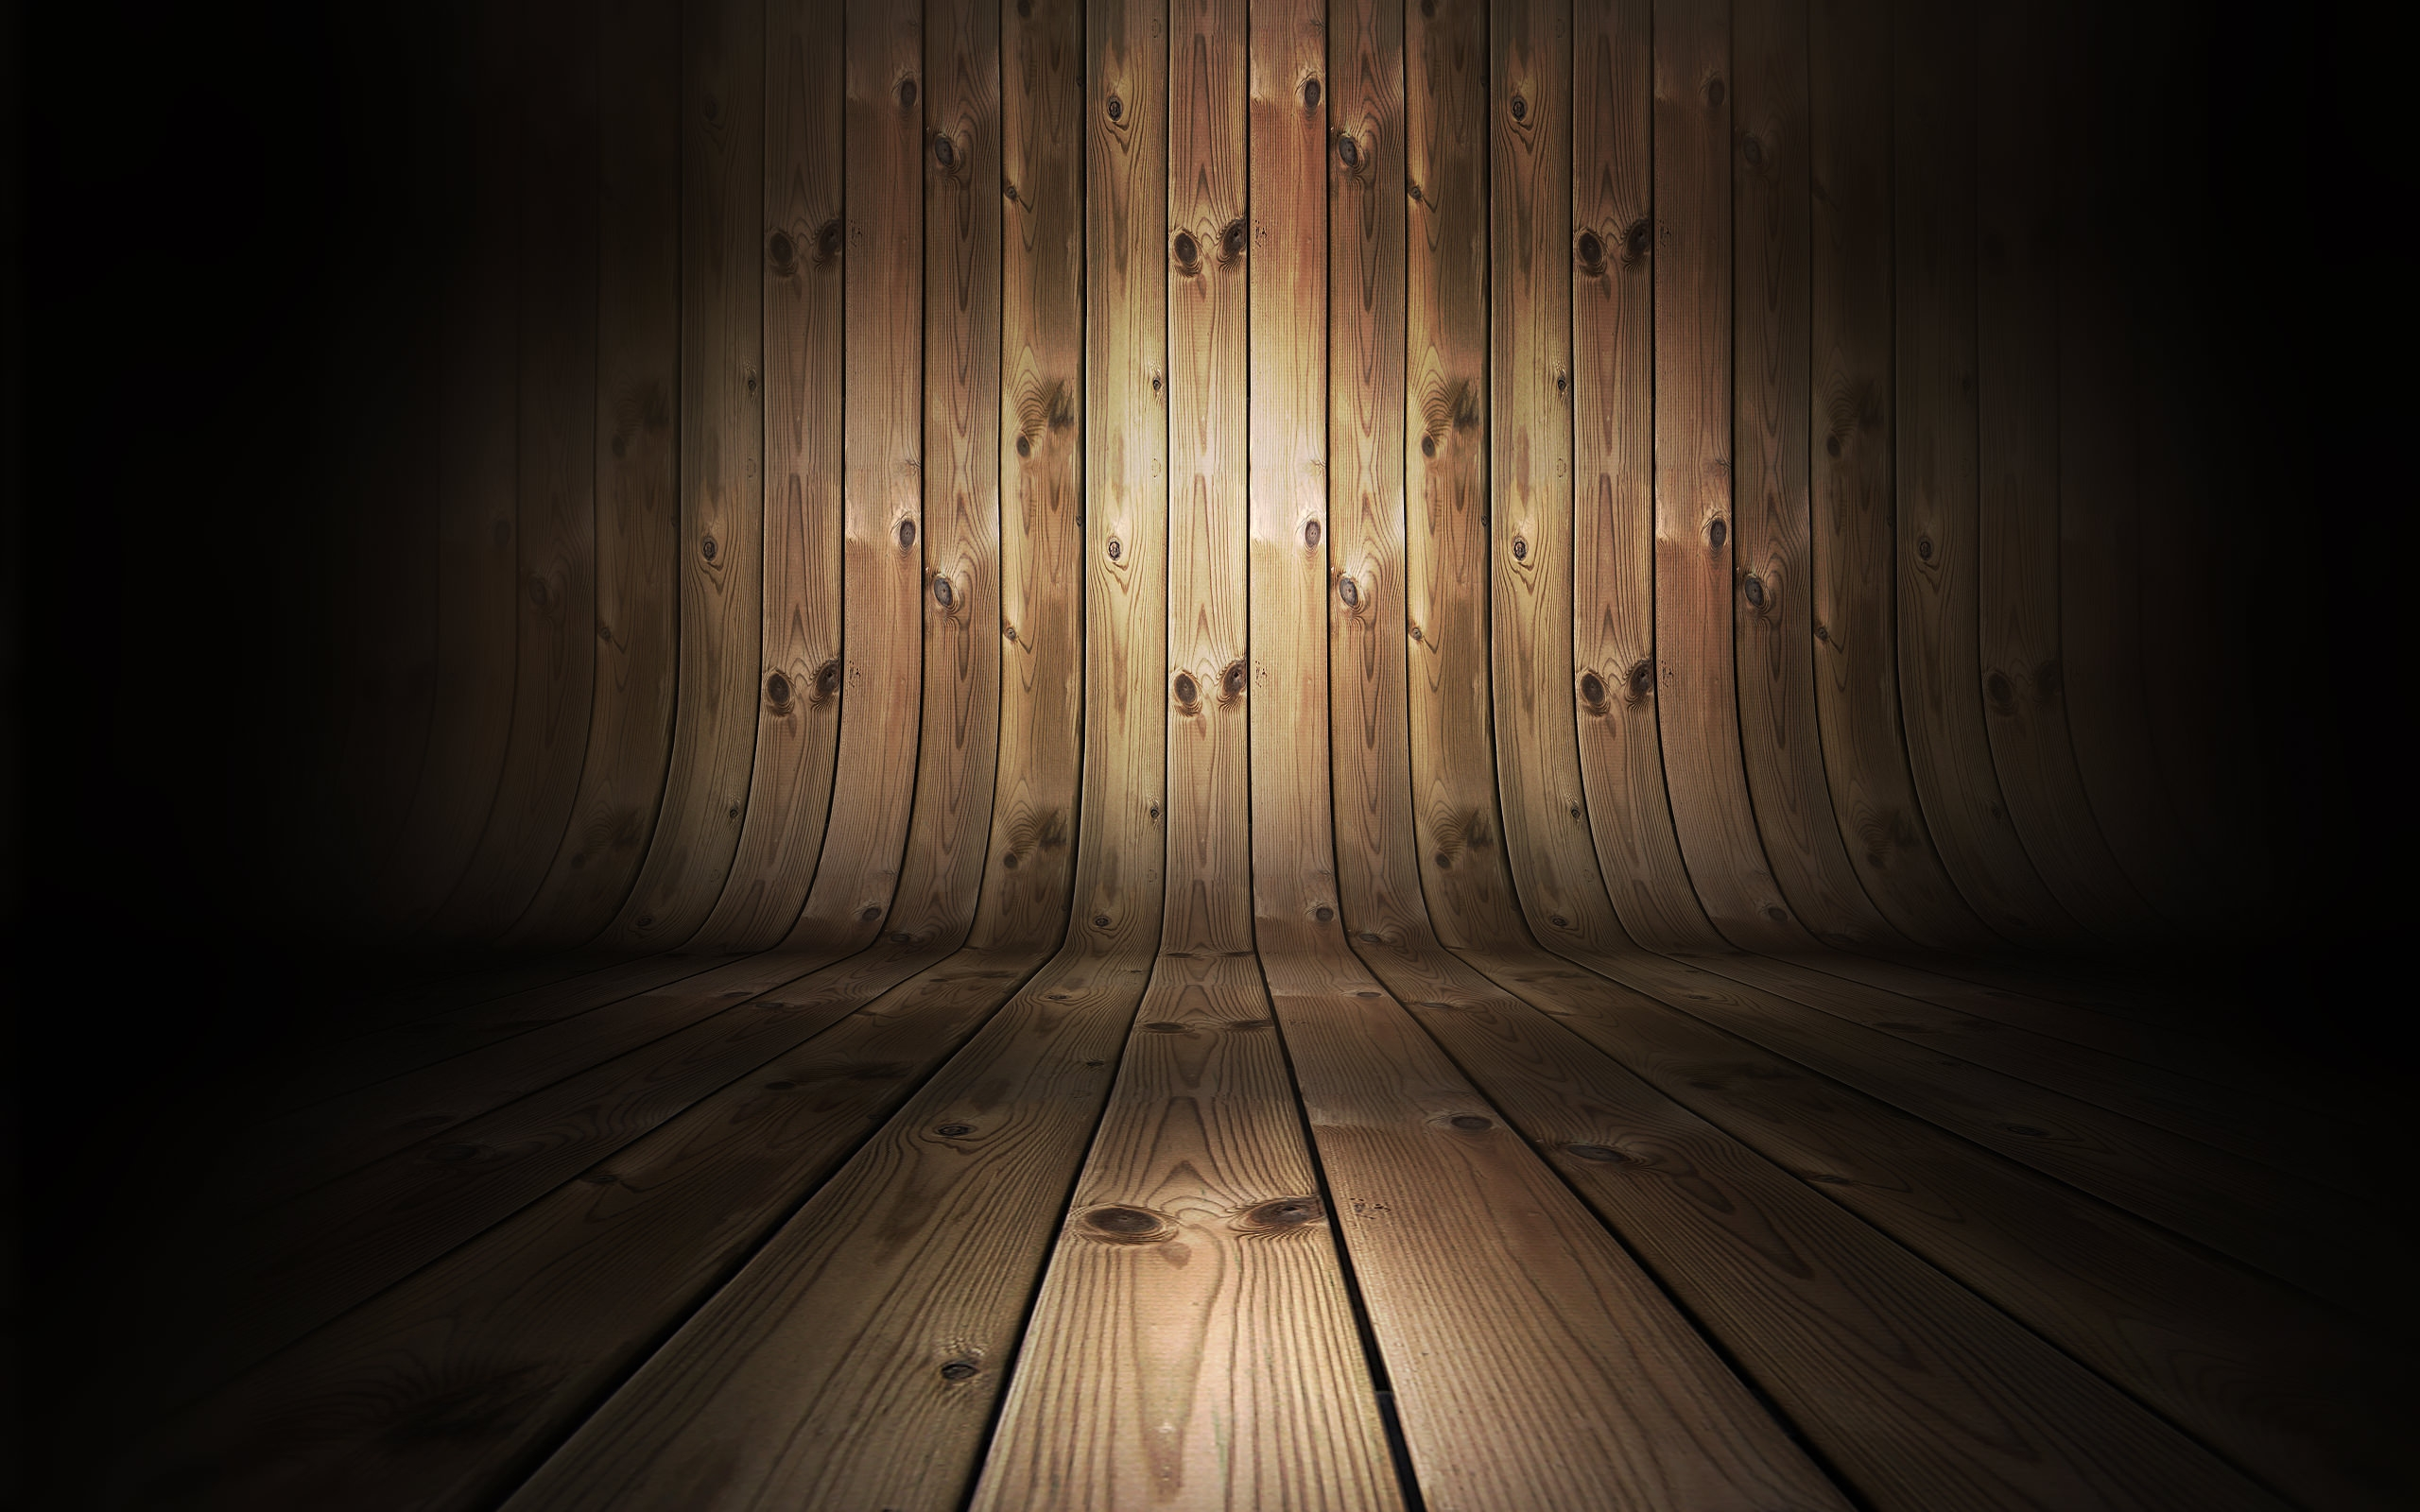 HD Wood Background Wallpaper